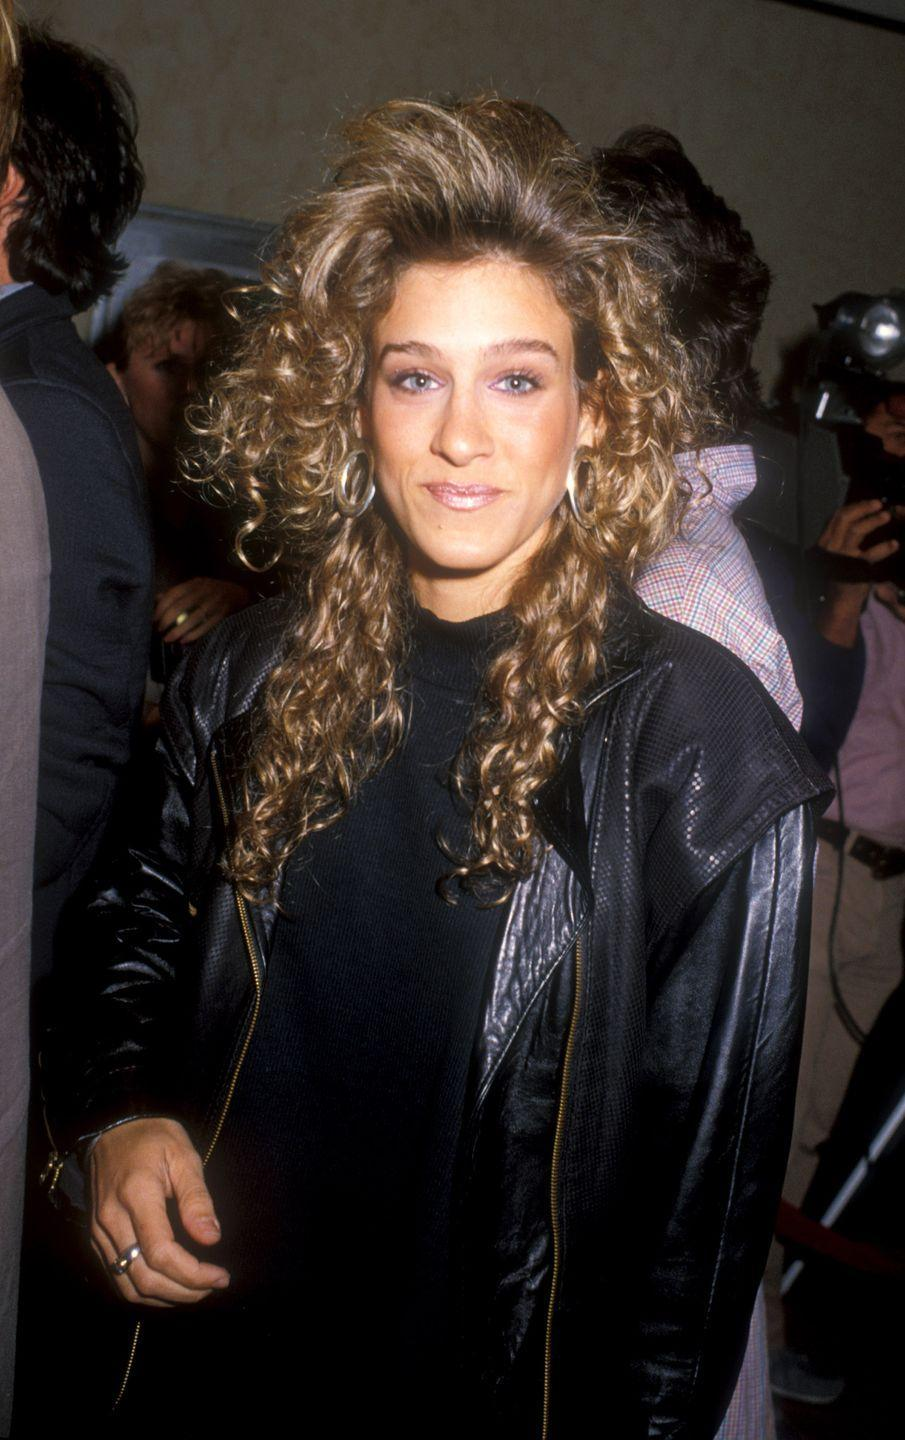 <p>Among other stars, Sarah Jessica Parker rocked this incredibly '80s do, inspiring American women to follow suit by teasing their bangs and perming their locks.</p>